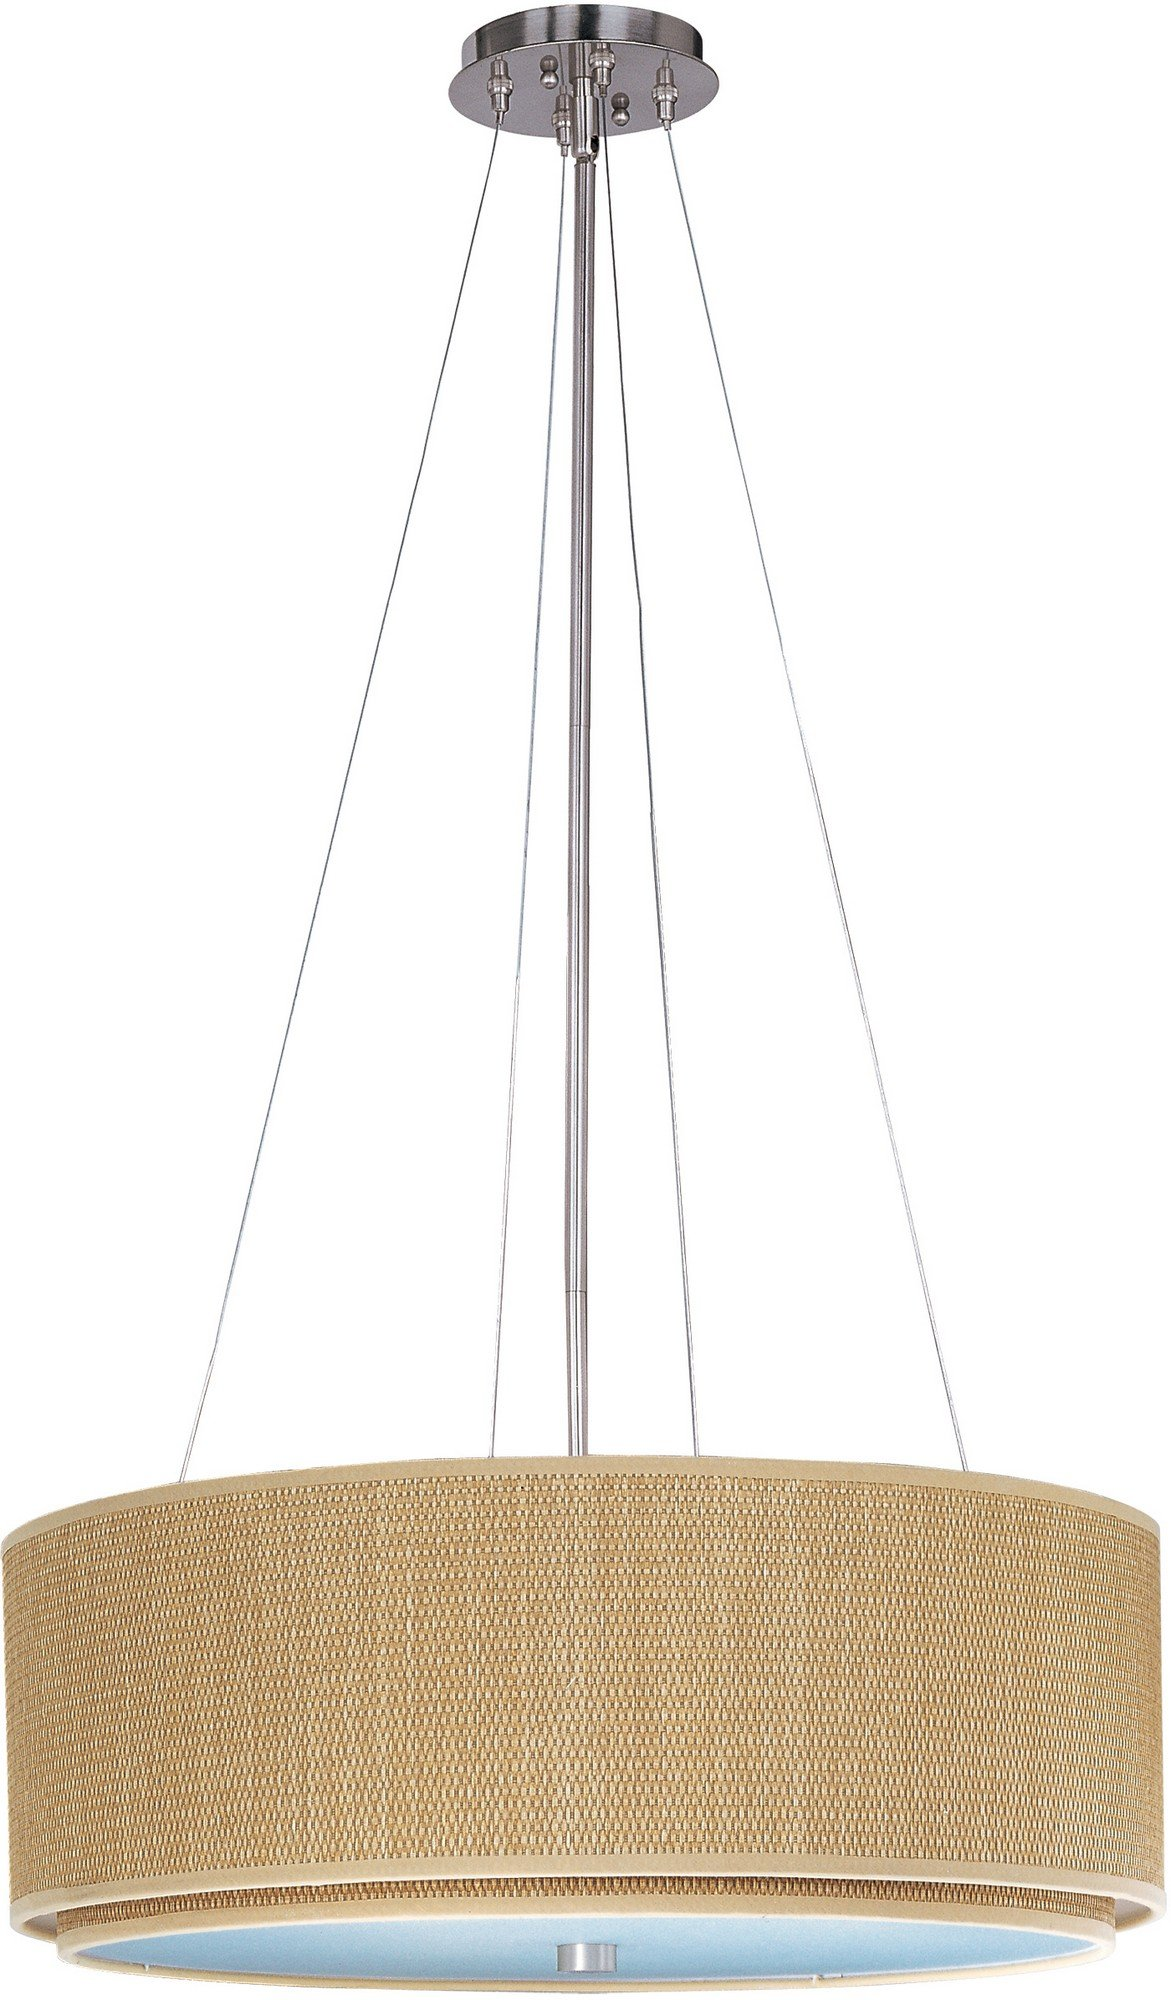 ET2 E95060-101SN Elements 3-Light Single Pendant, Satin Nickel Finish, Glass, MB Incandescent Bulb, 2W Max., Dry Safety Rated, 2900K Color Temp., Standard Dimmable, Shade Material, 280 Rated Lumens